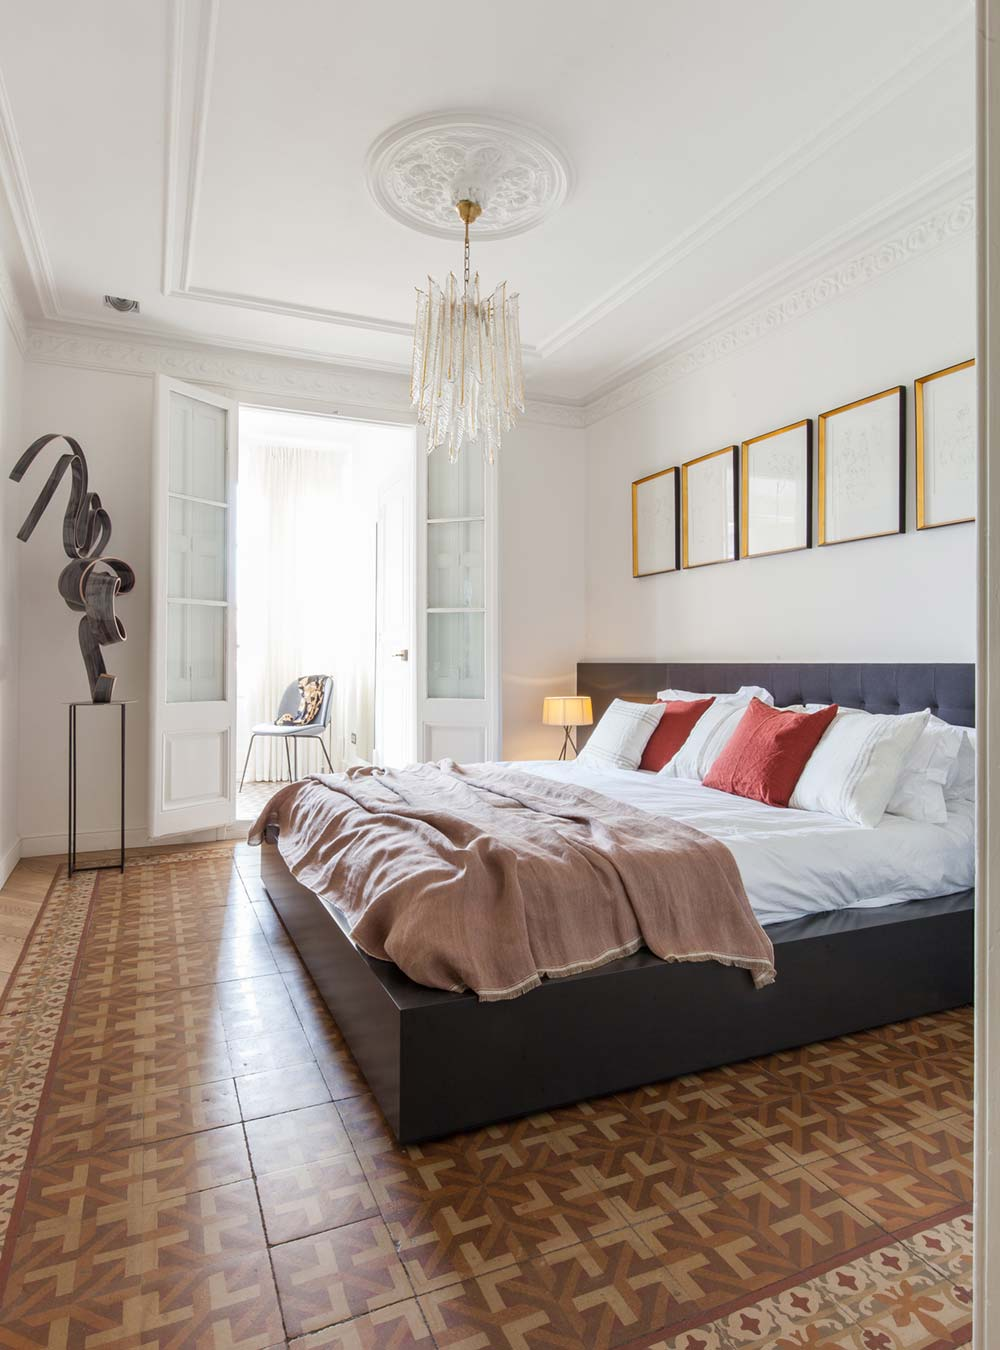 tile flooring bedroom design - Aribau Apartment